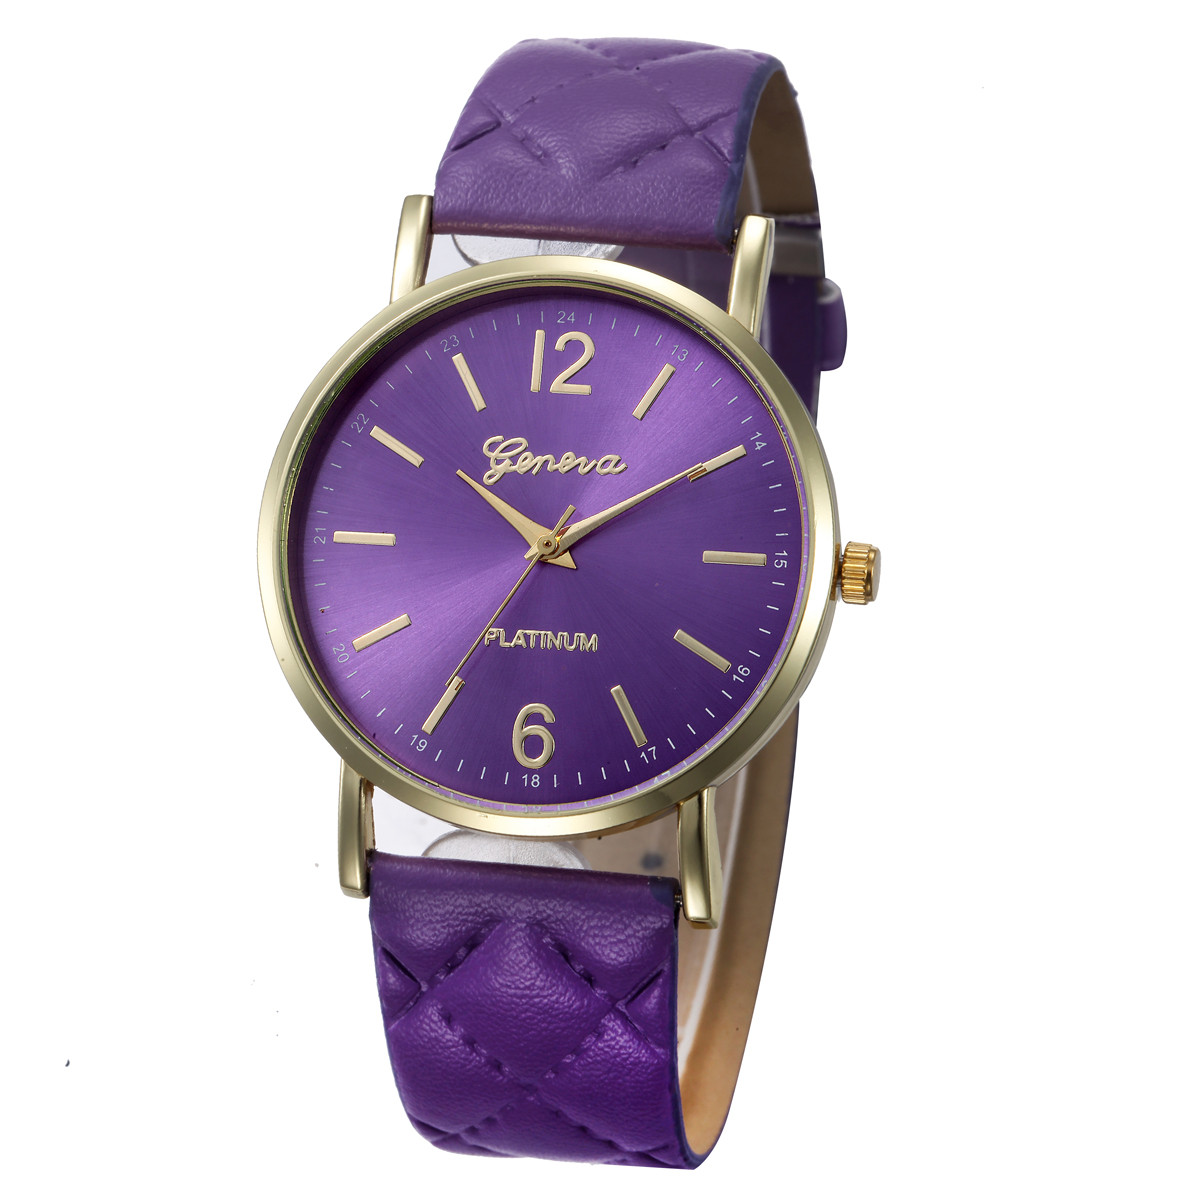 2018 Top Brand Geneva Watch Women Casual Roman Numeral Watch For Female PU Leather Strap Quartz Wrist Watch relogio Clock 2018 top brand geneva brand watches women casual roman numeral watch for women pu leather quartz wrist watch relogio gold clock